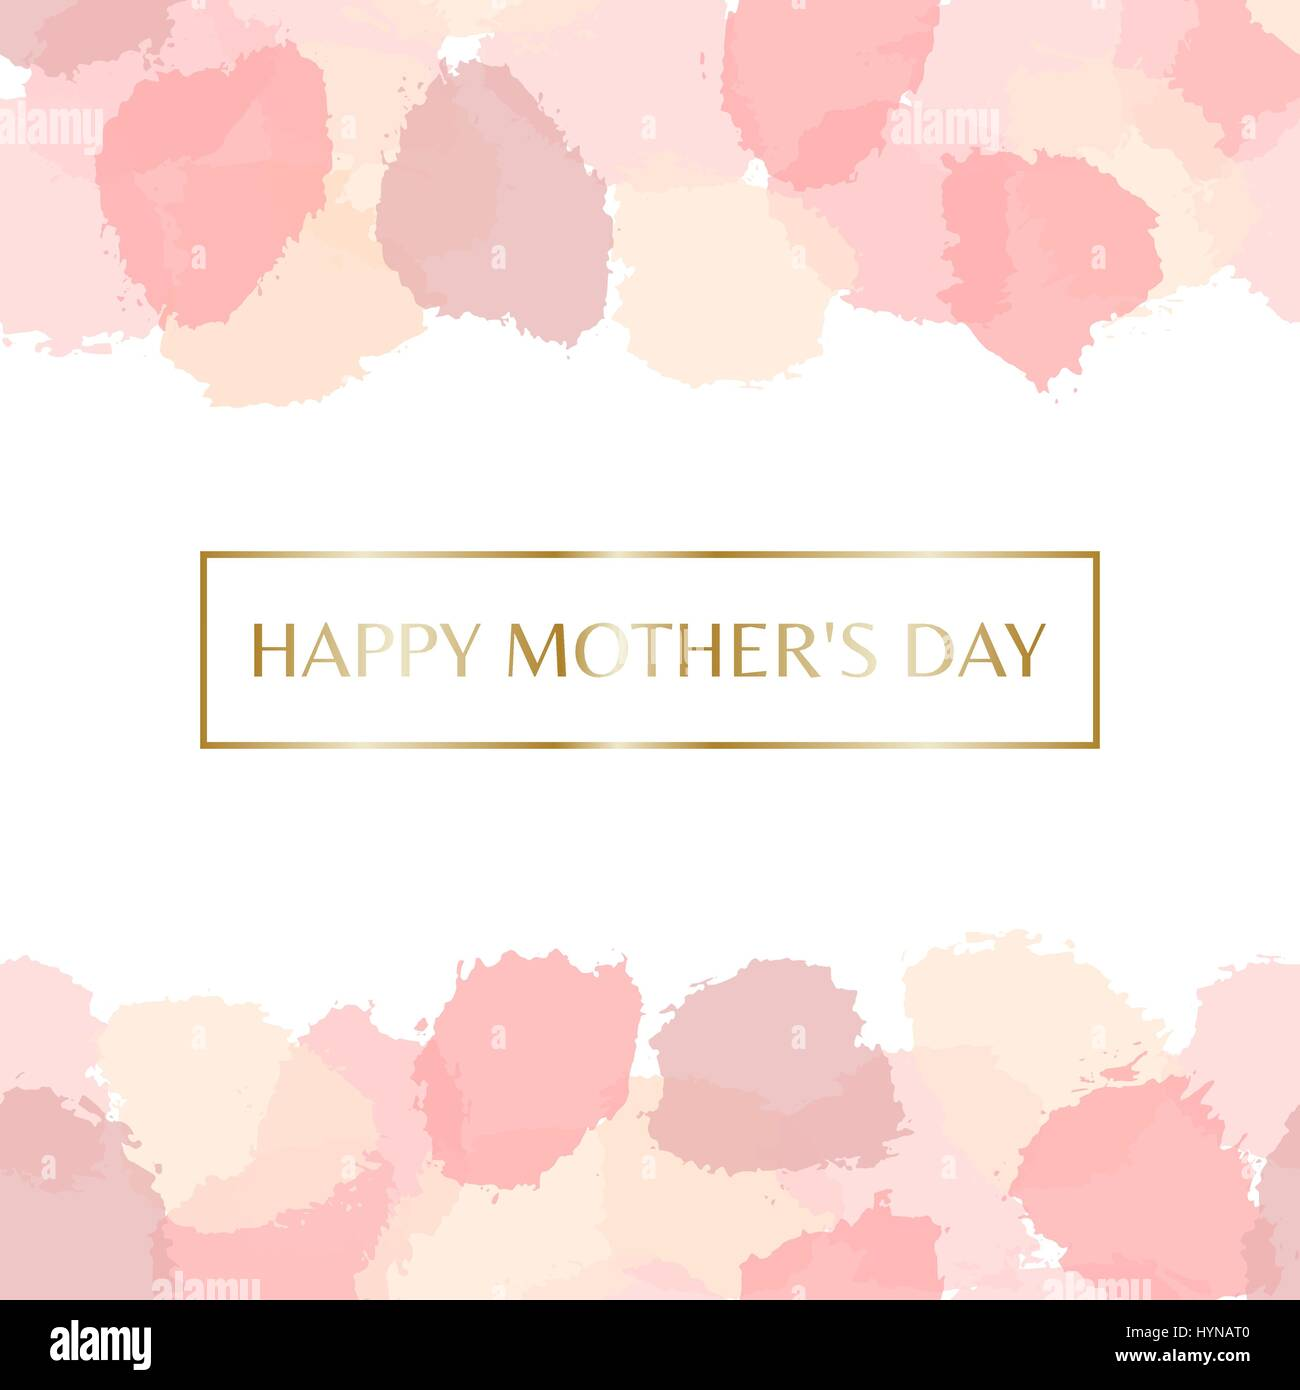 Mothers day greeting card design with gold letters message and mothers day greeting card design with gold letters message and pastel pink watercolor brush strokes in the background m4hsunfo